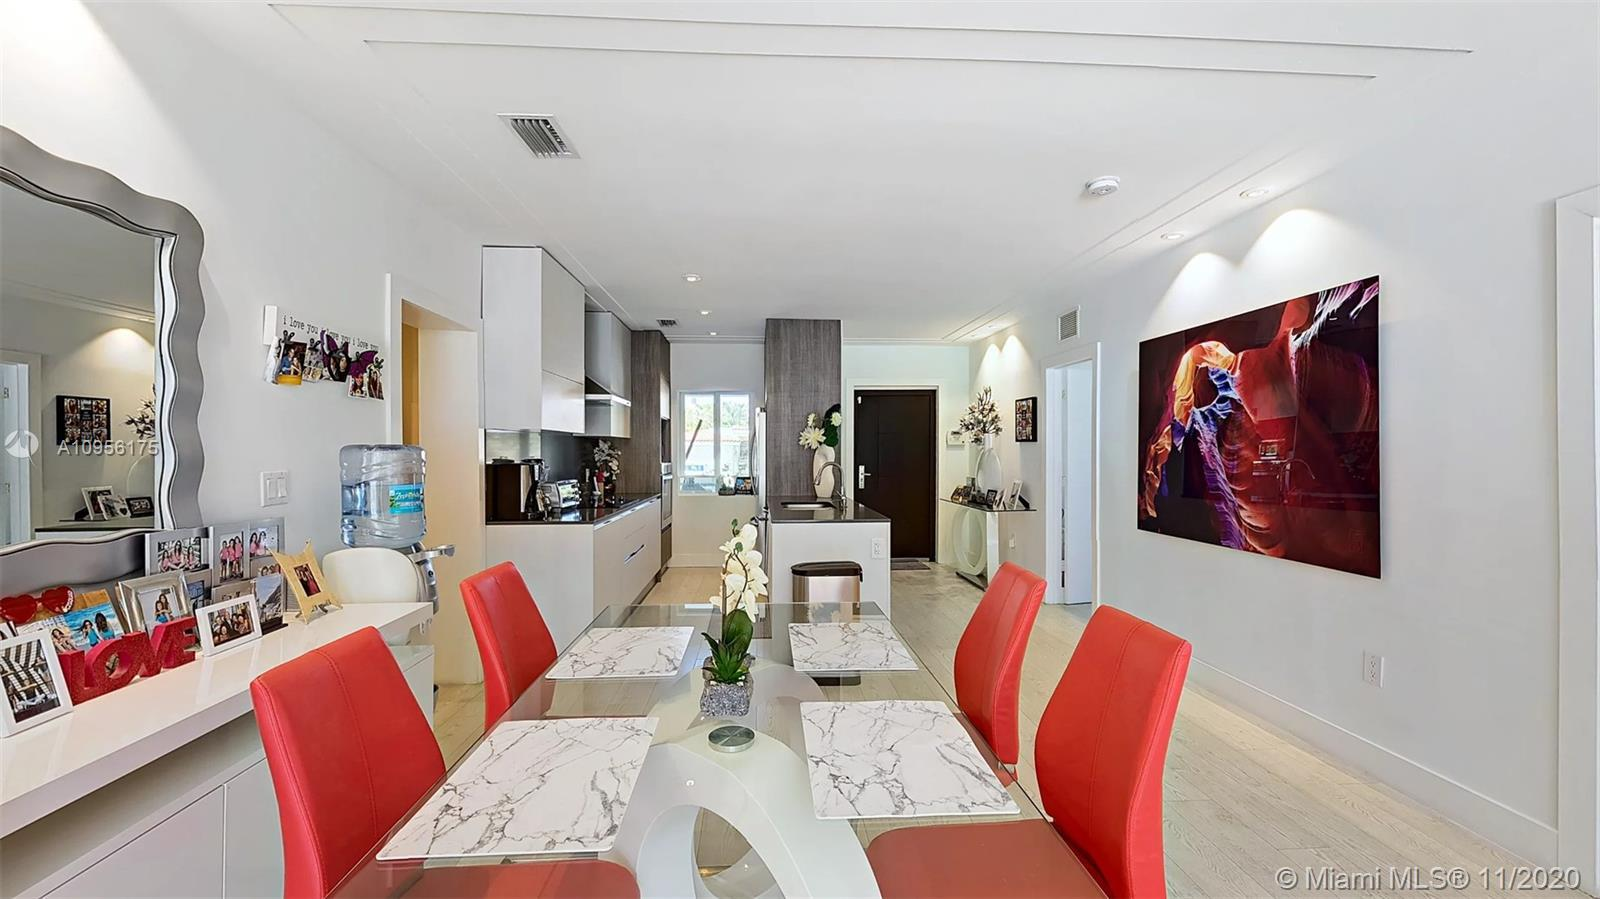 Surfside Slice of Heaven fully remodeled contemporary 3bd home situated blocks from the beach. Moder